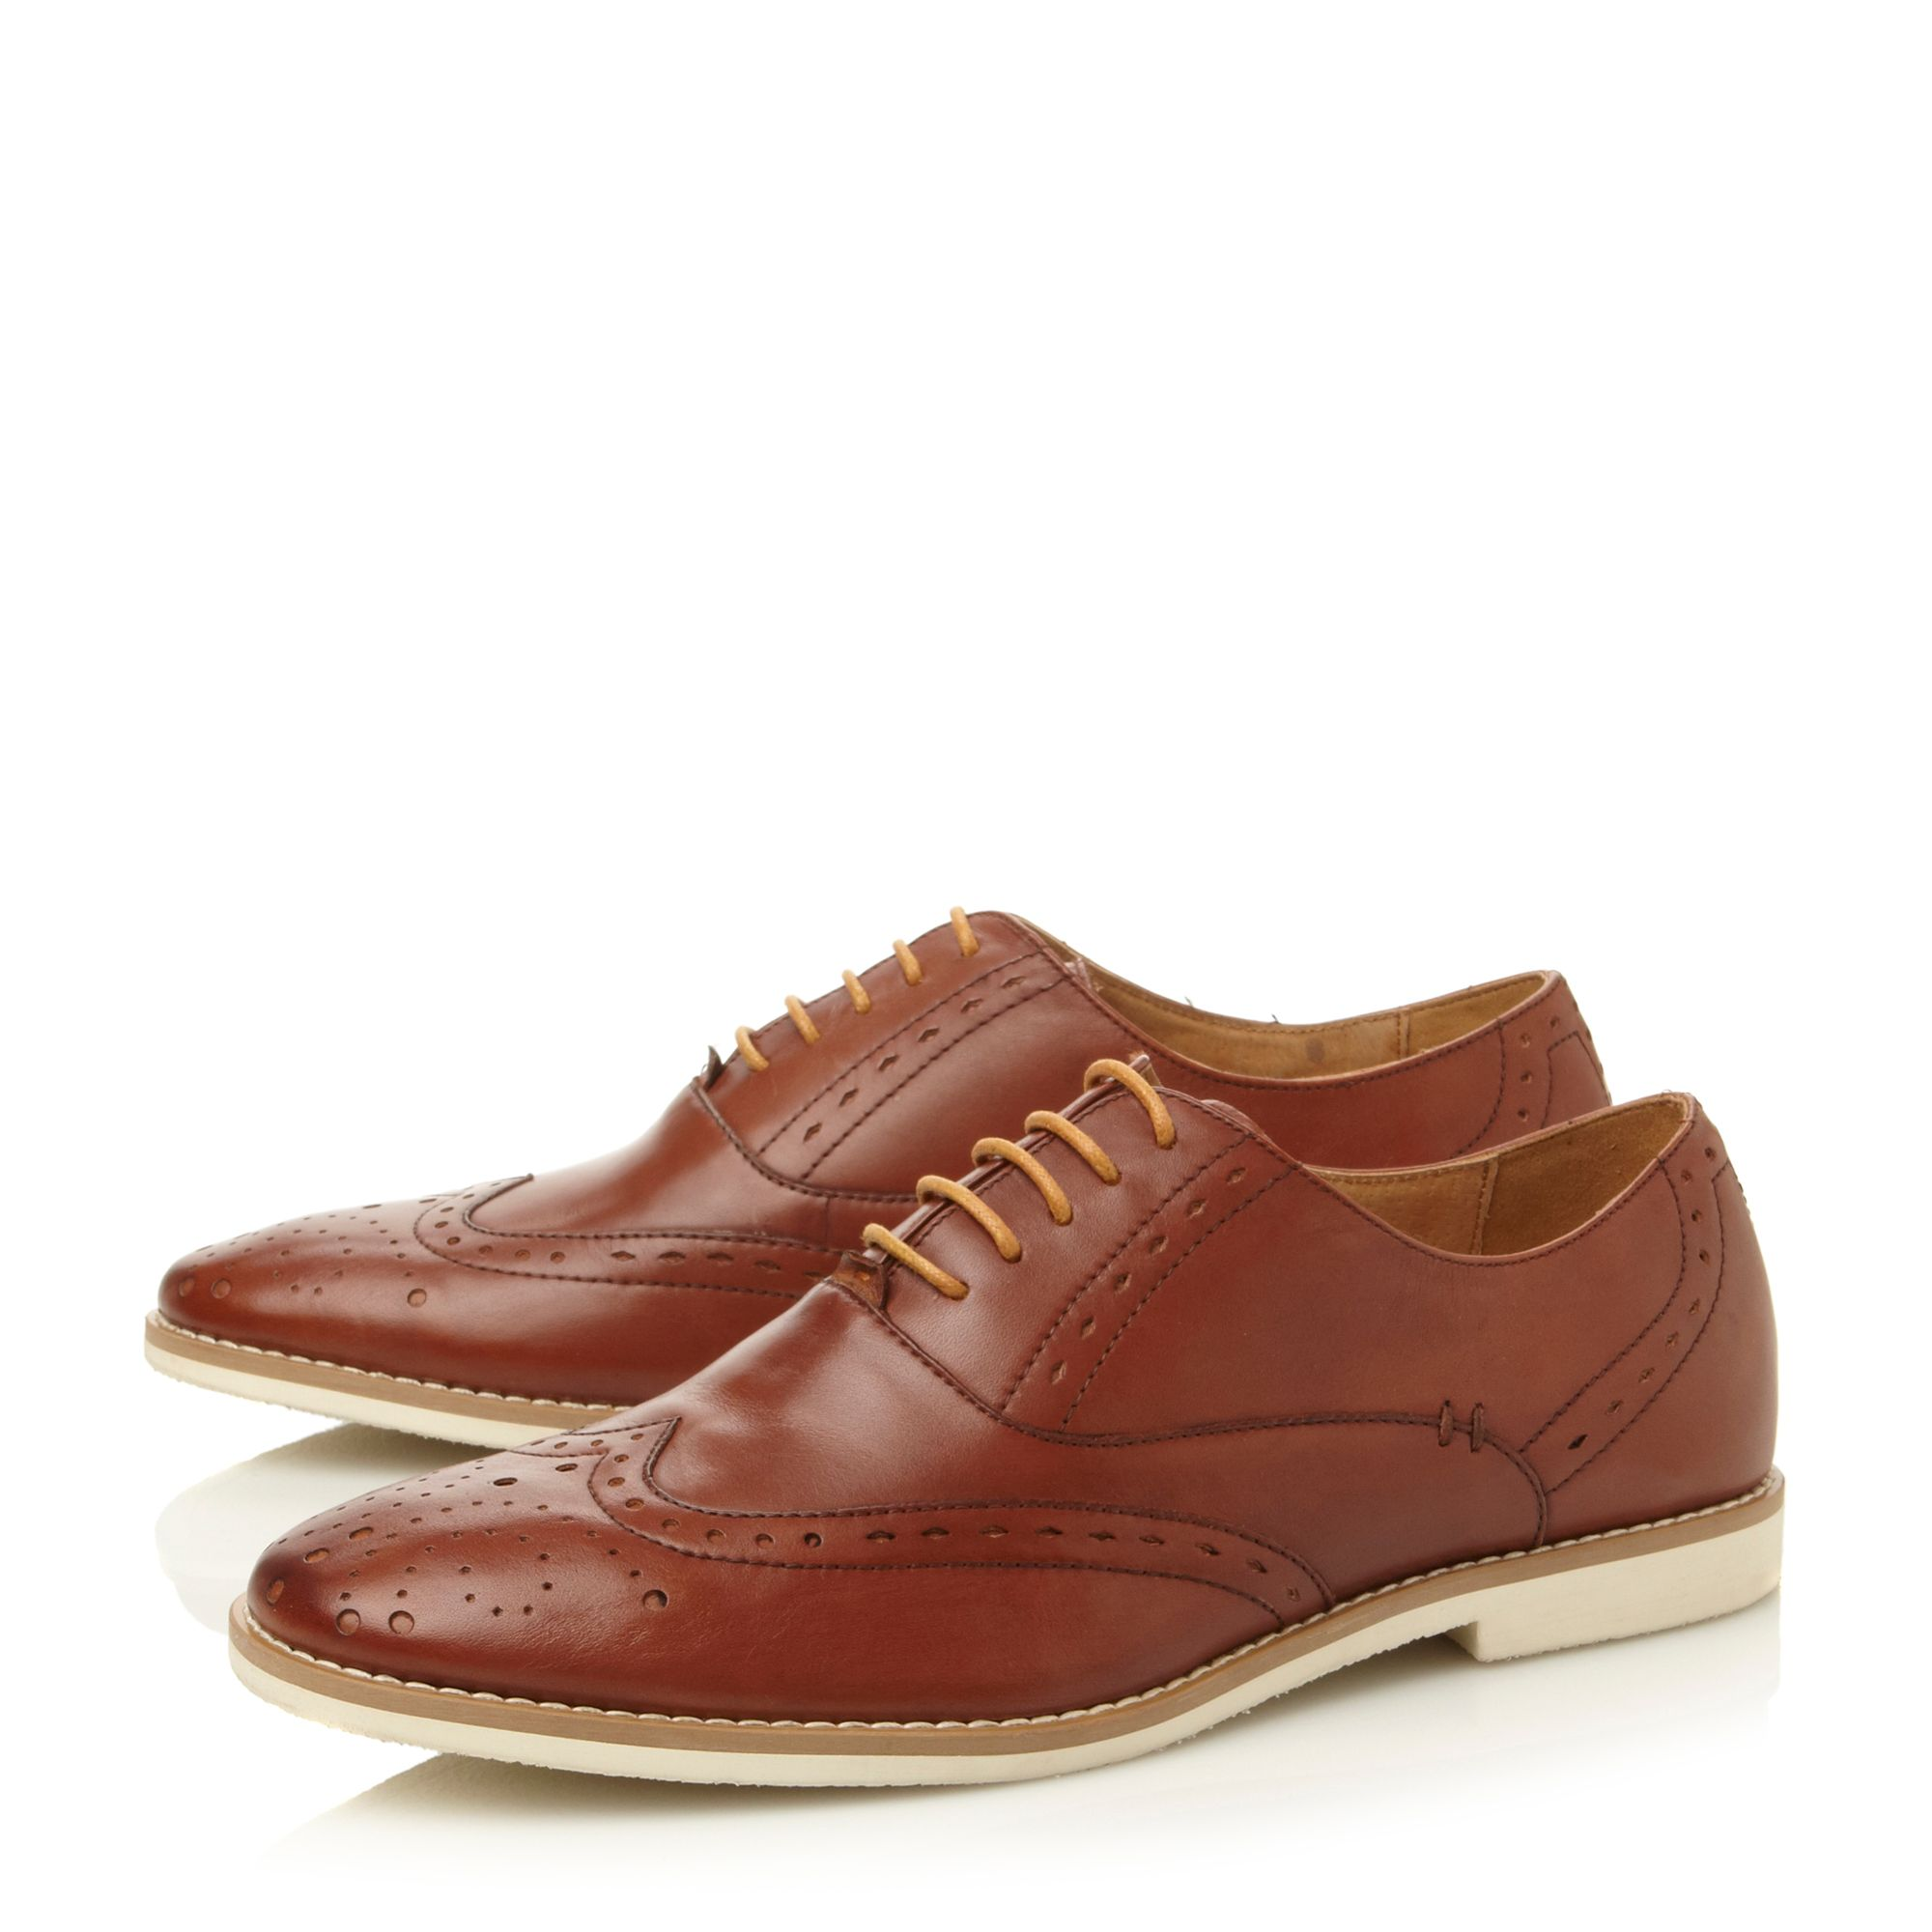 Bolton lace up brogue oxford shoes